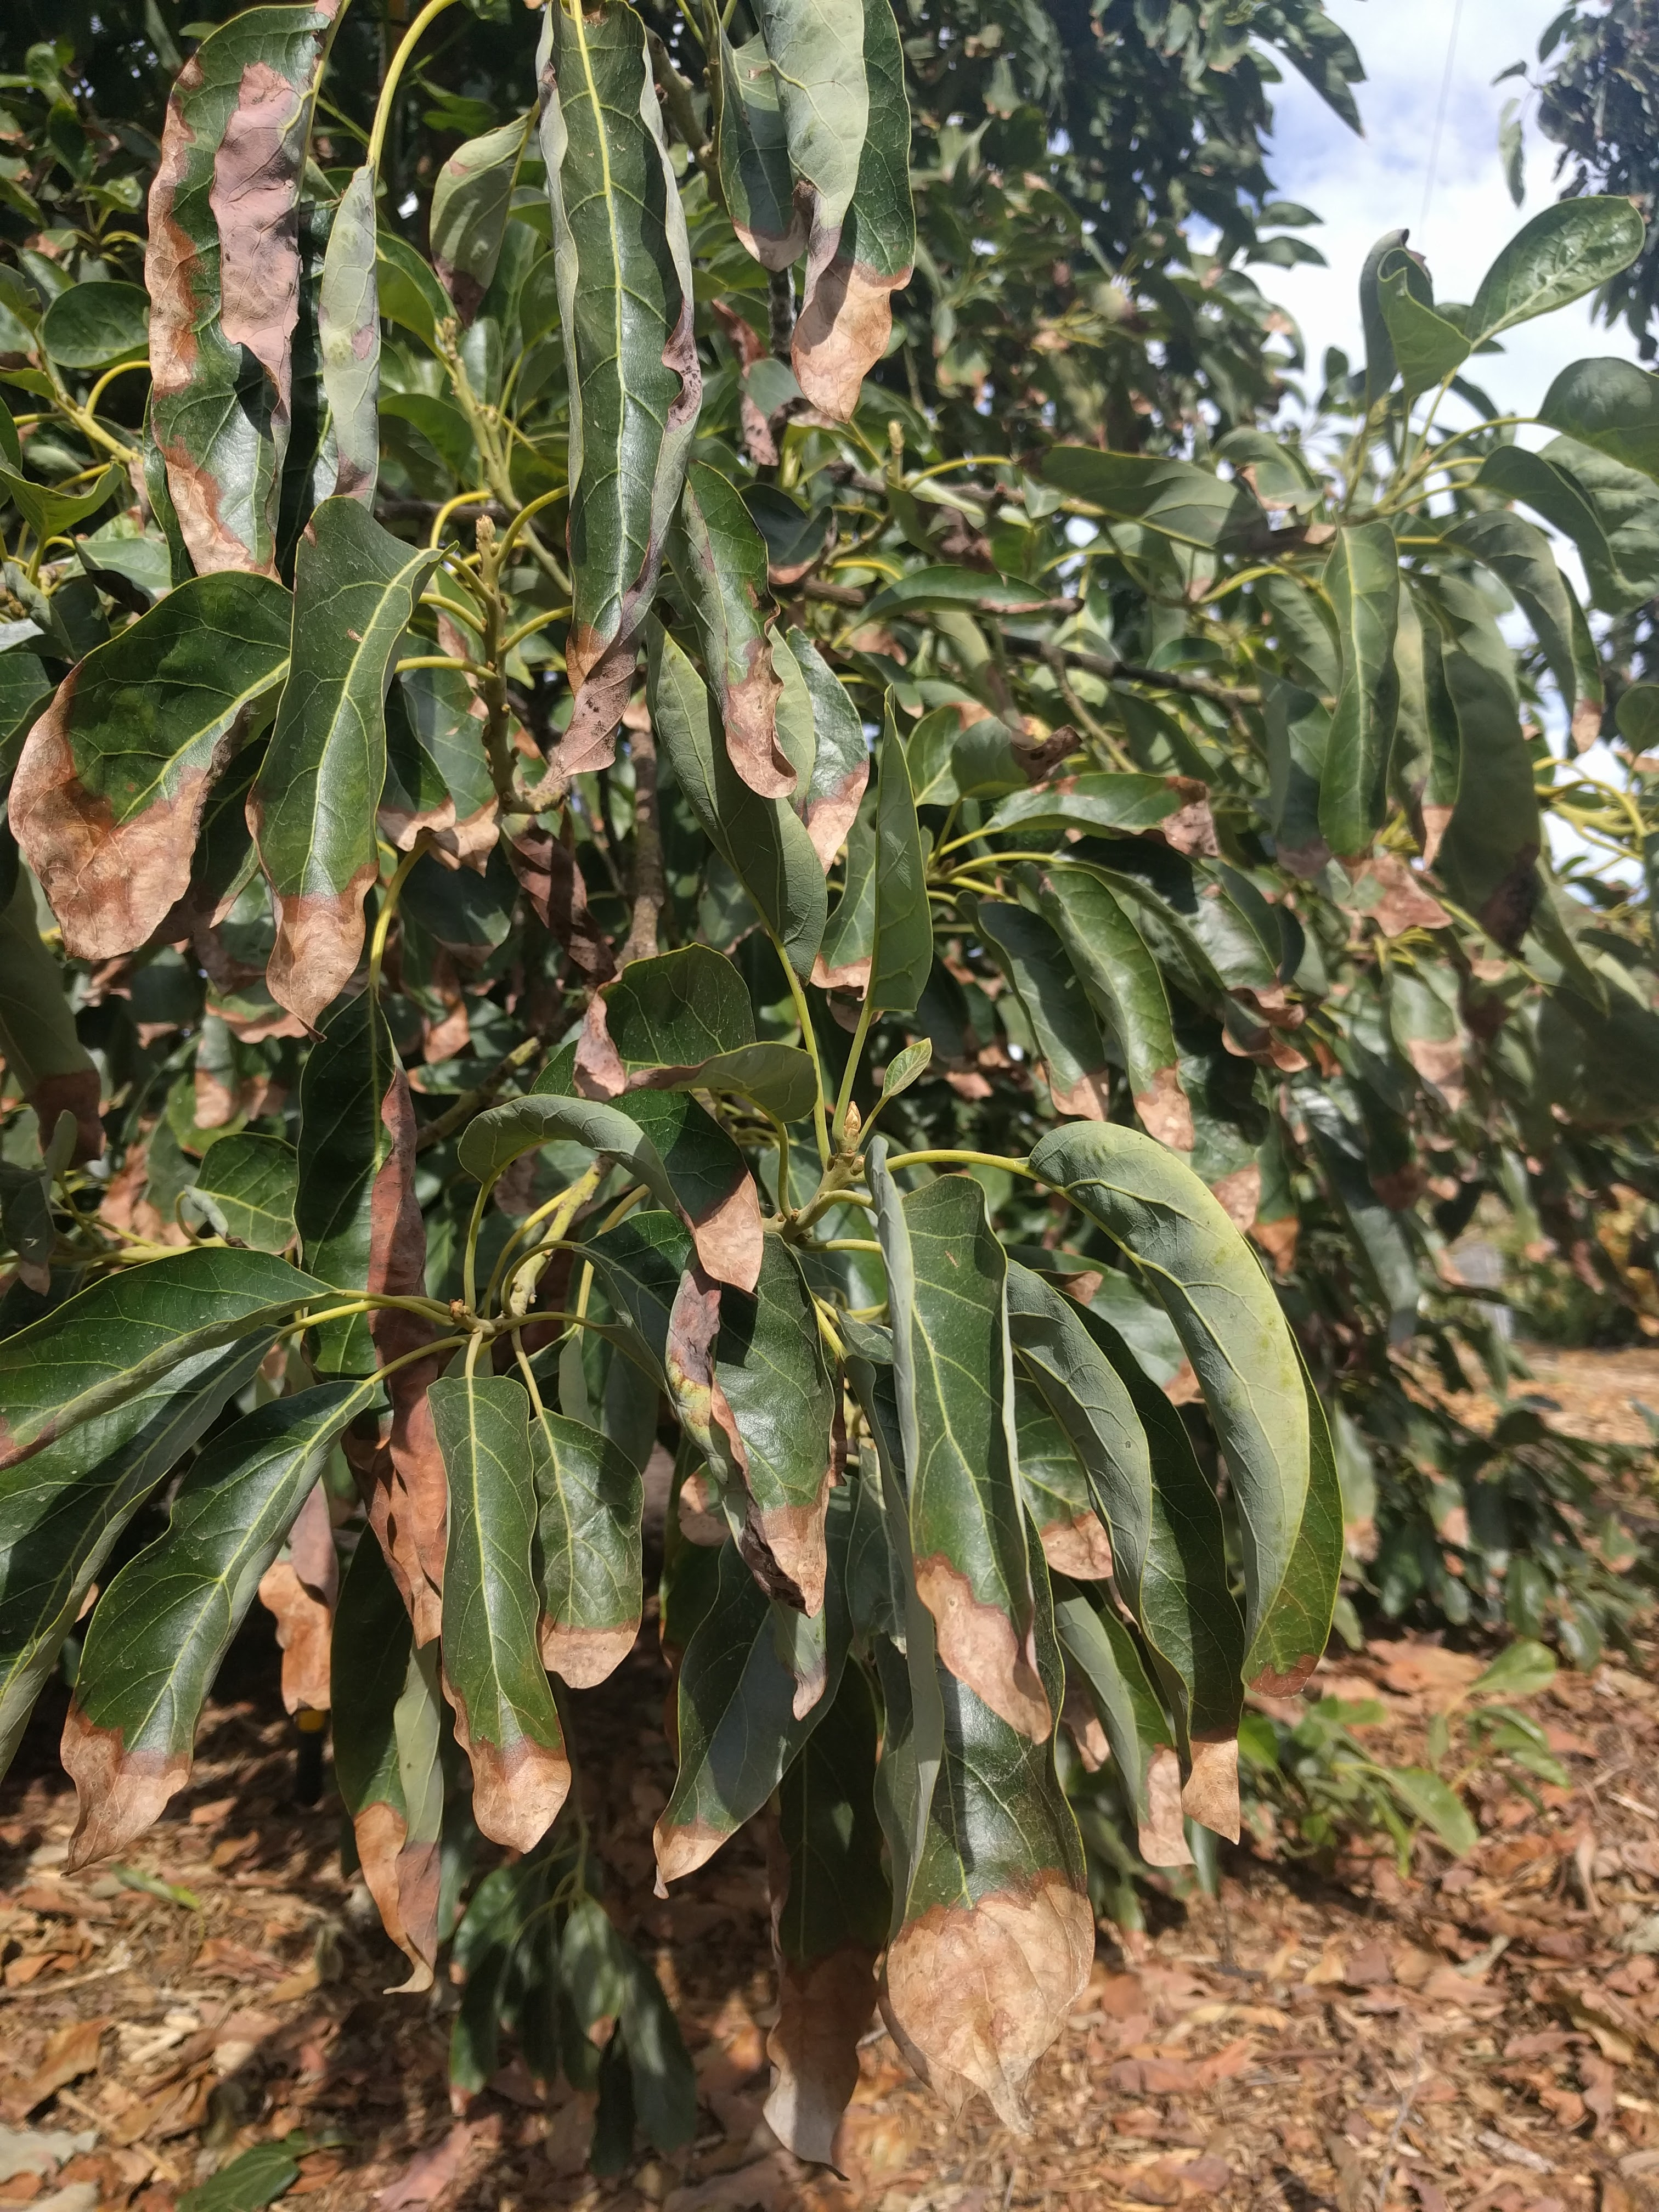 Avocado Leaves Turning Brown Heres Why And What To Do Greg